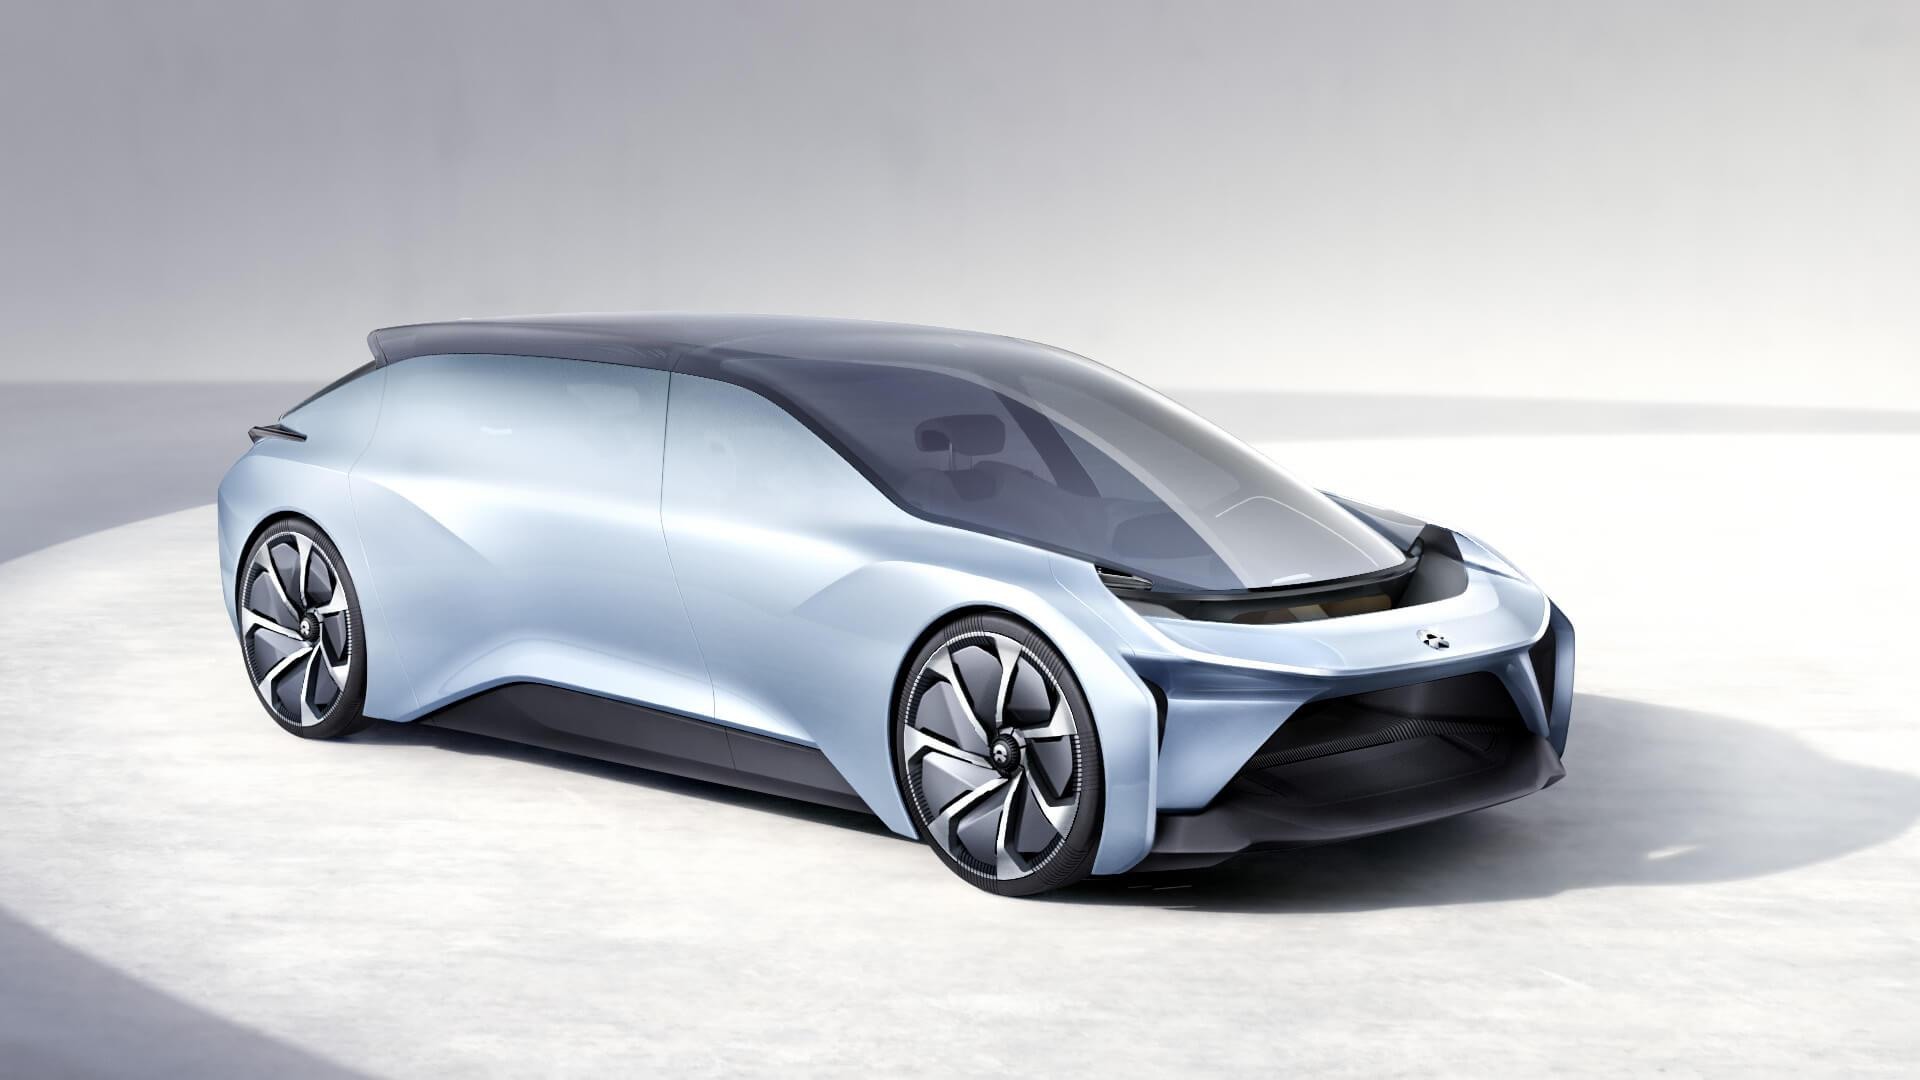 Vw Diesel Truck >> Nio Eve concept is yet another Chinese luxury electric SUV, this one autonomous